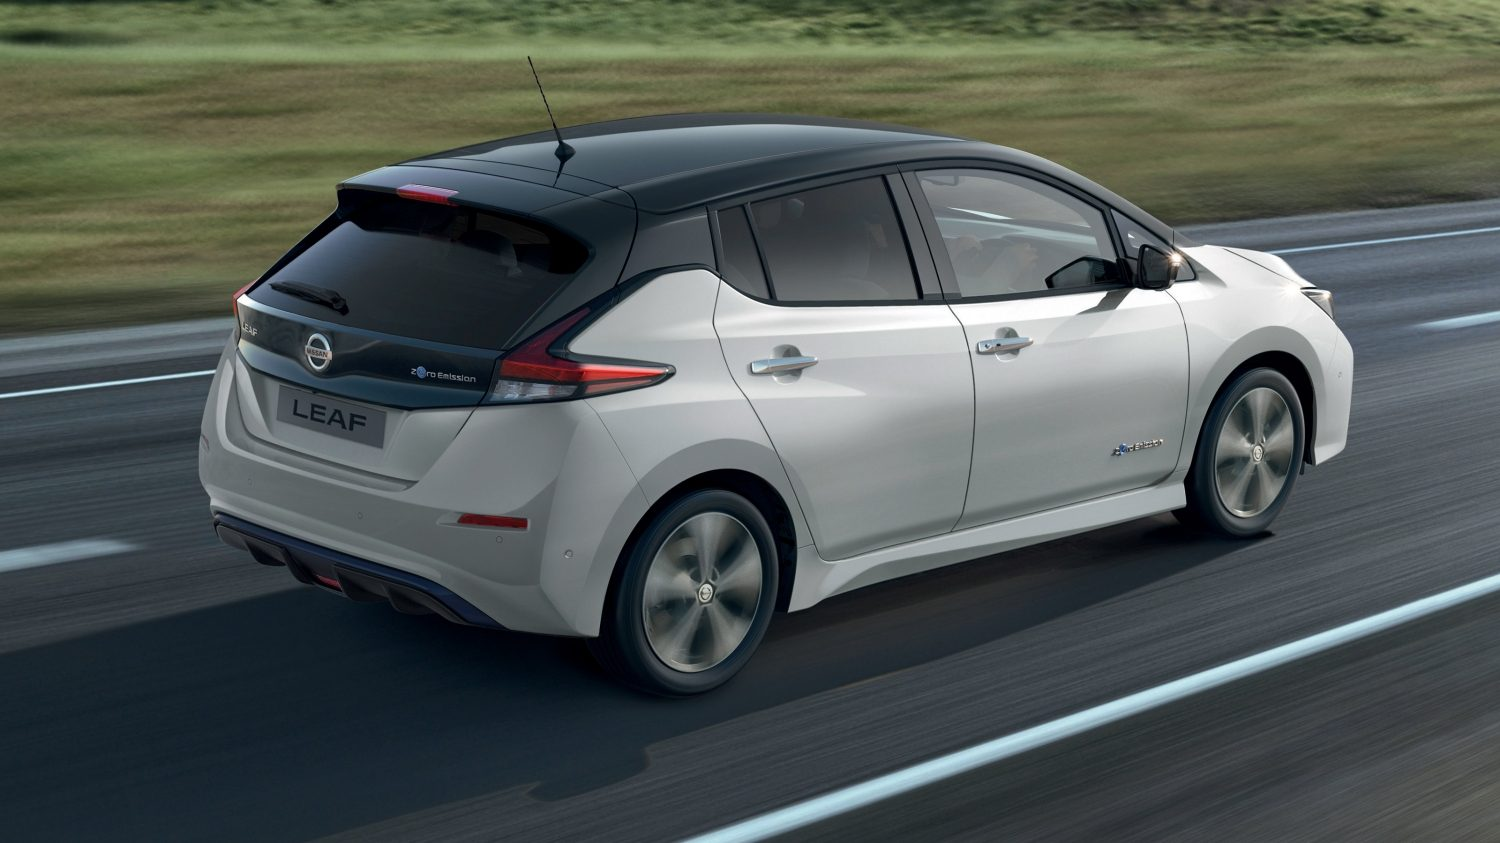 Nissan LEAF driving on open road